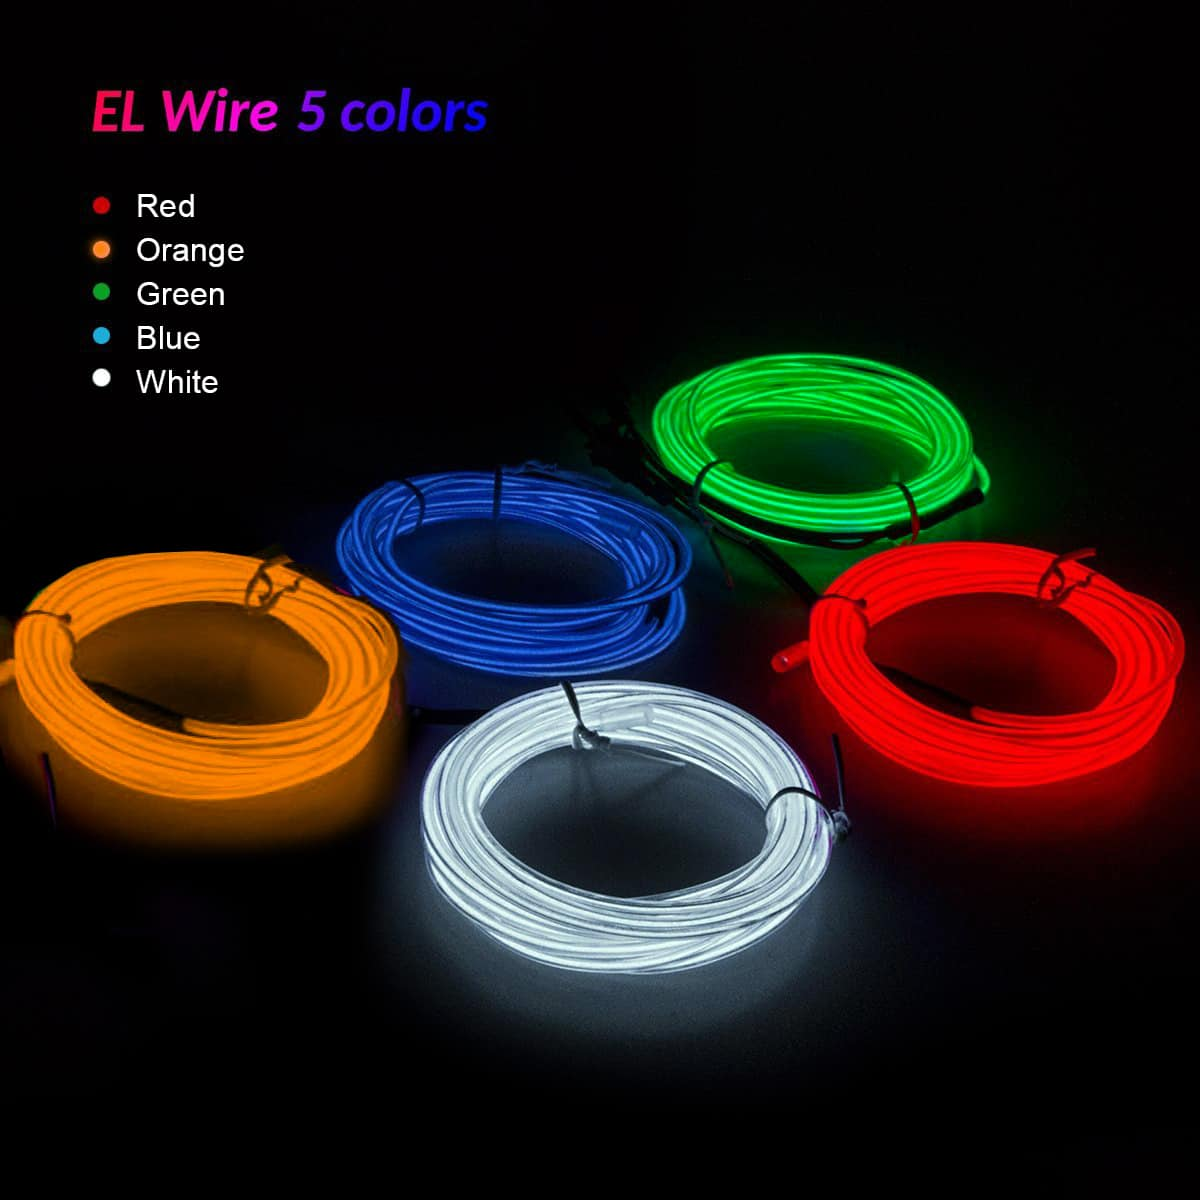 Glow Light Mode EL Wire Kit - 10 Foot High Brightness Light